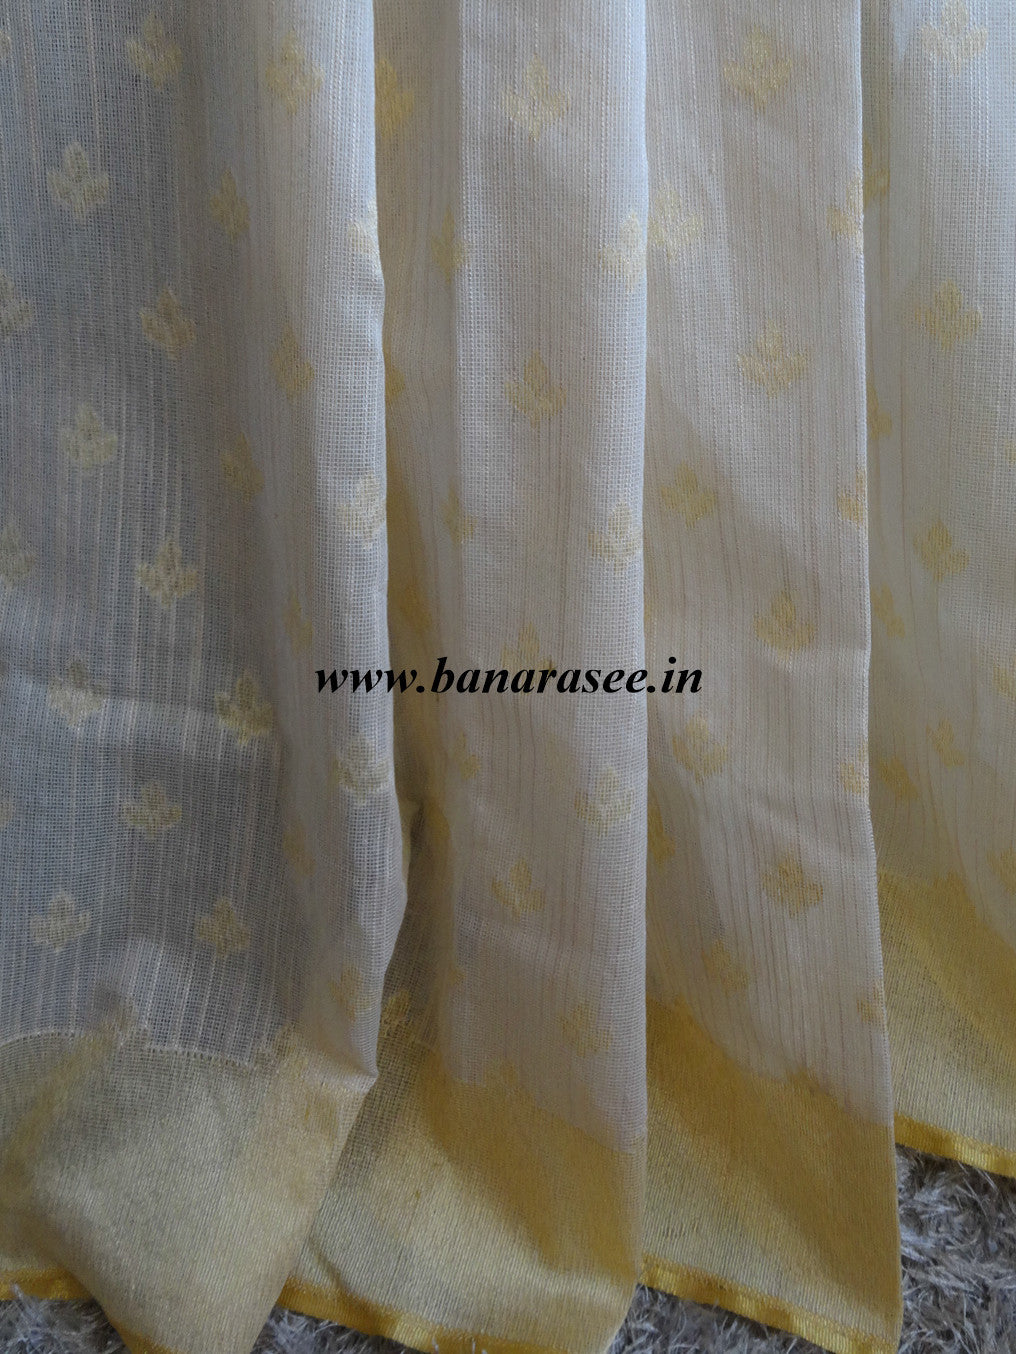 Banarasee/Banarasee Handwoven Half & Half Tissue Saree-White & Gold